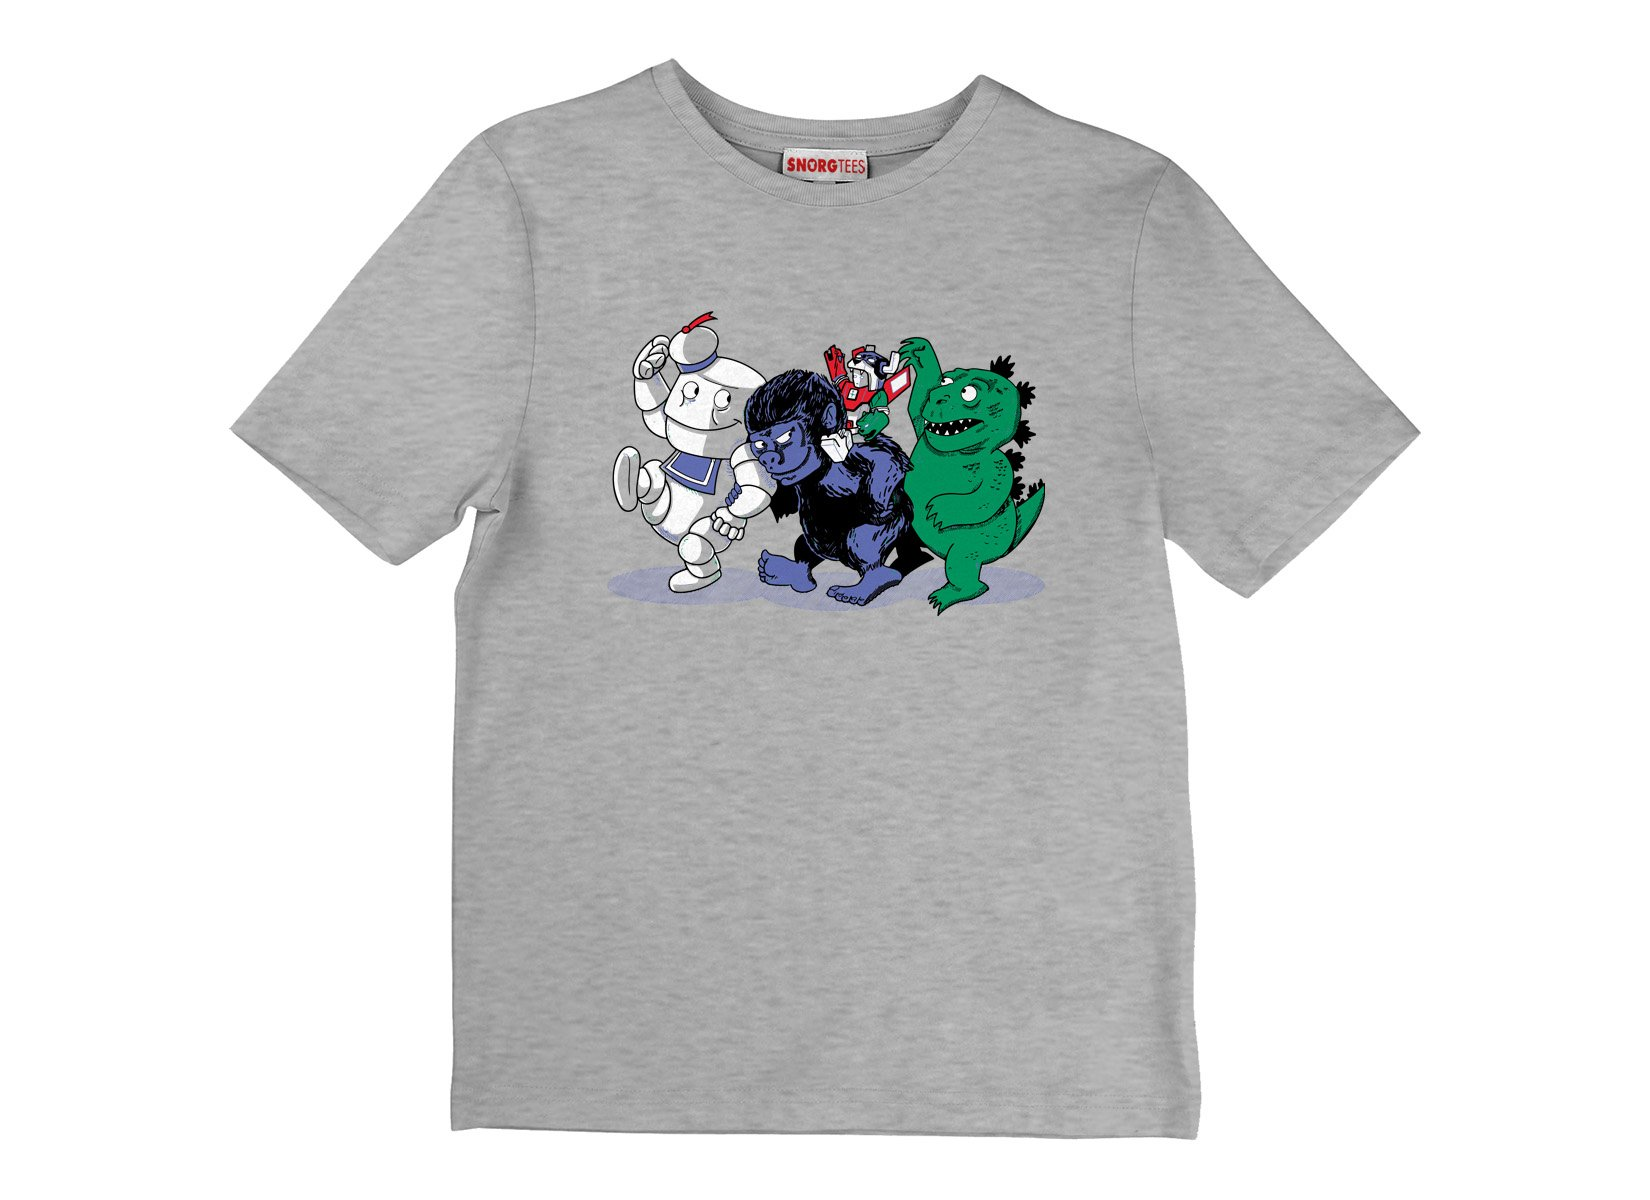 Where The Monsters Are on Kids T-Shirt